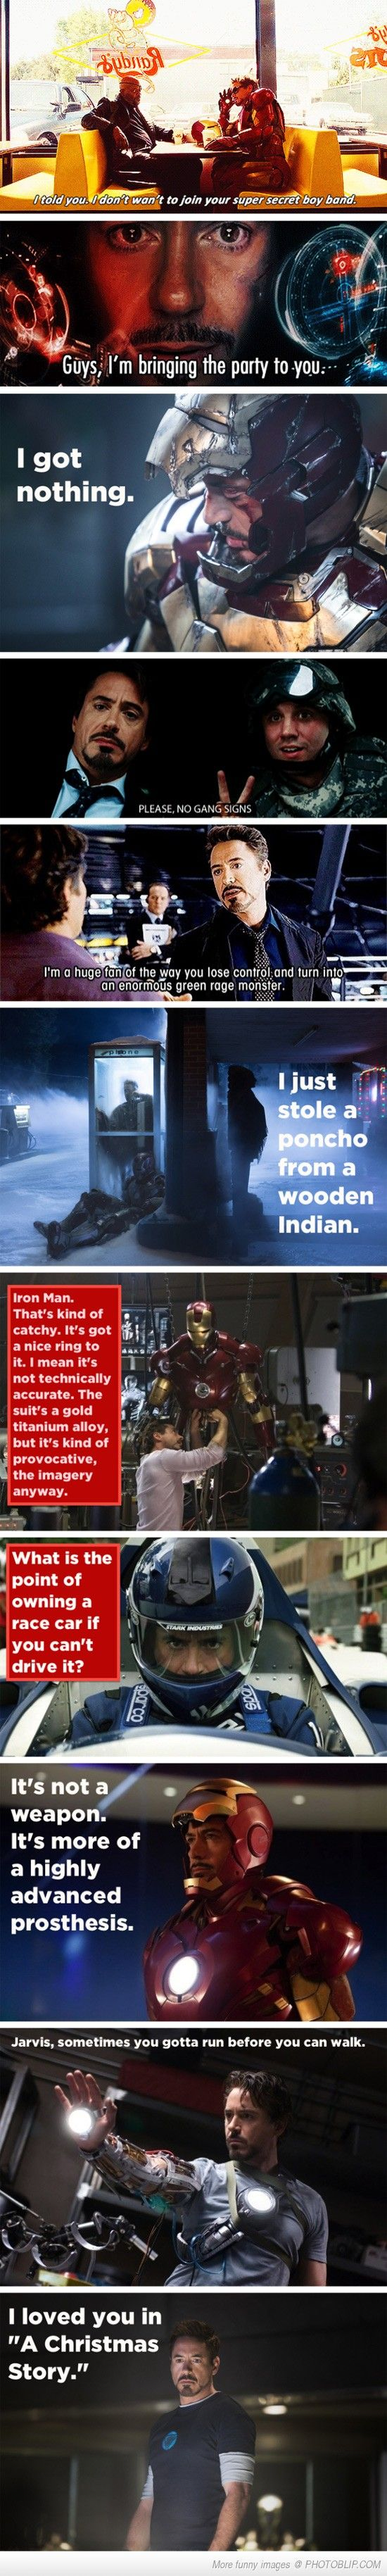 11 reasons why iron man is awesome.